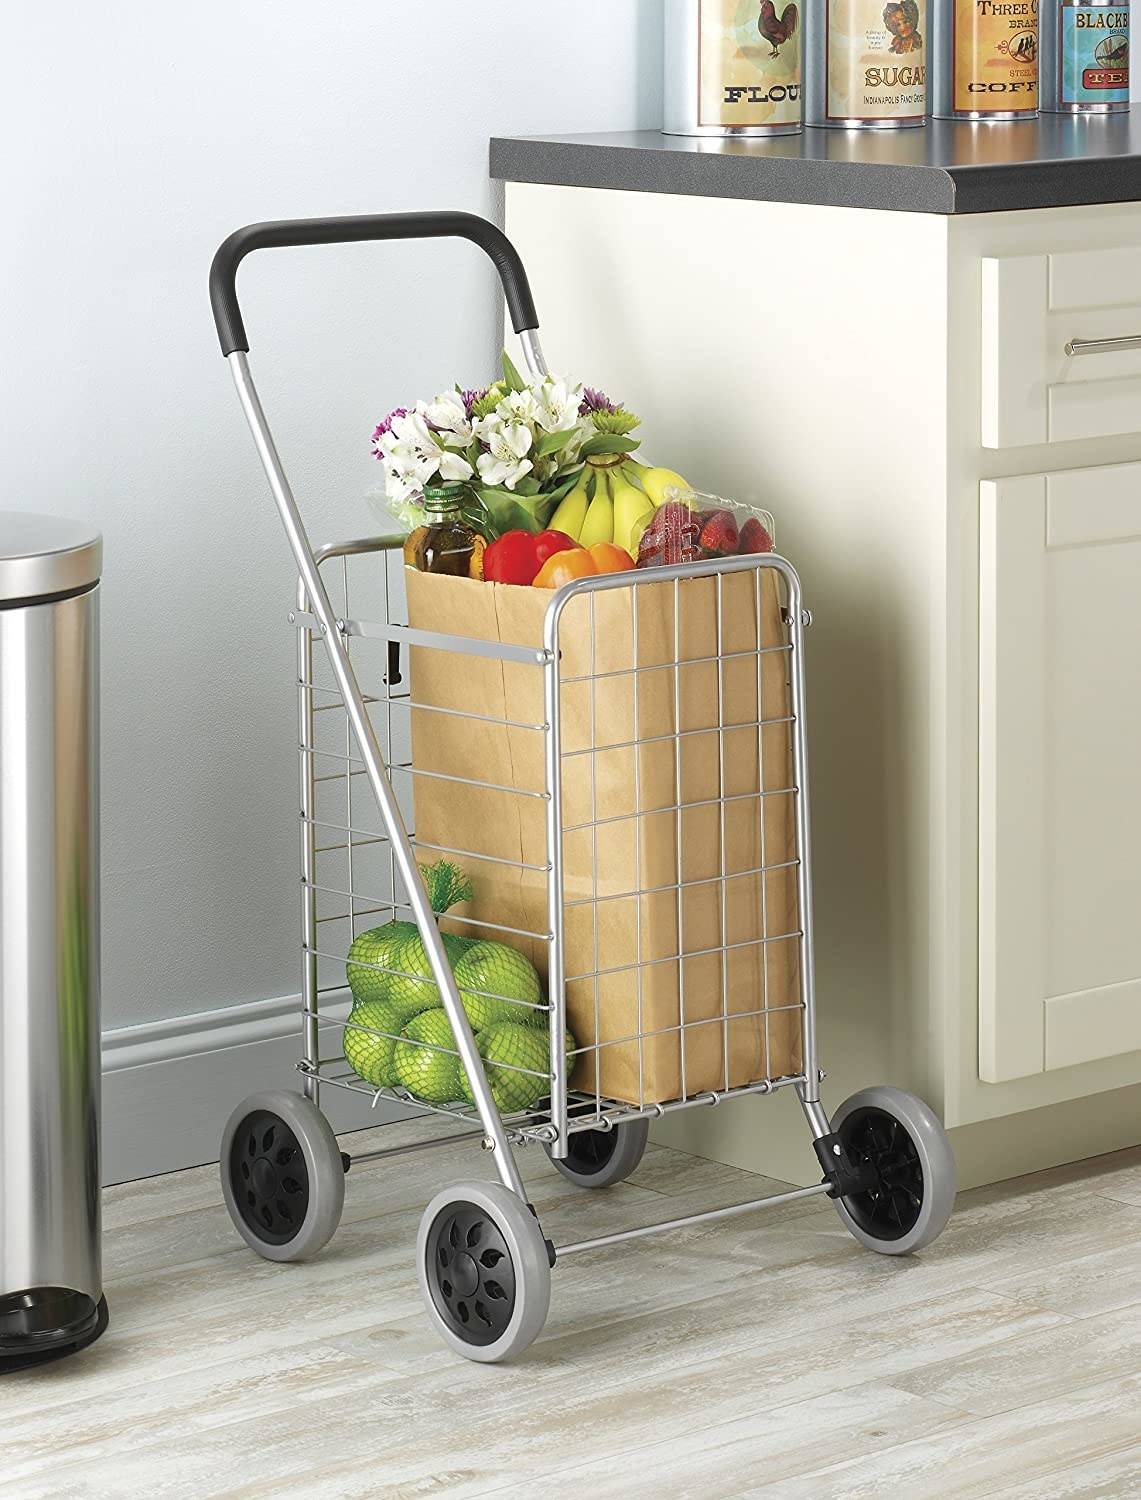 Metal cart with groceries inside